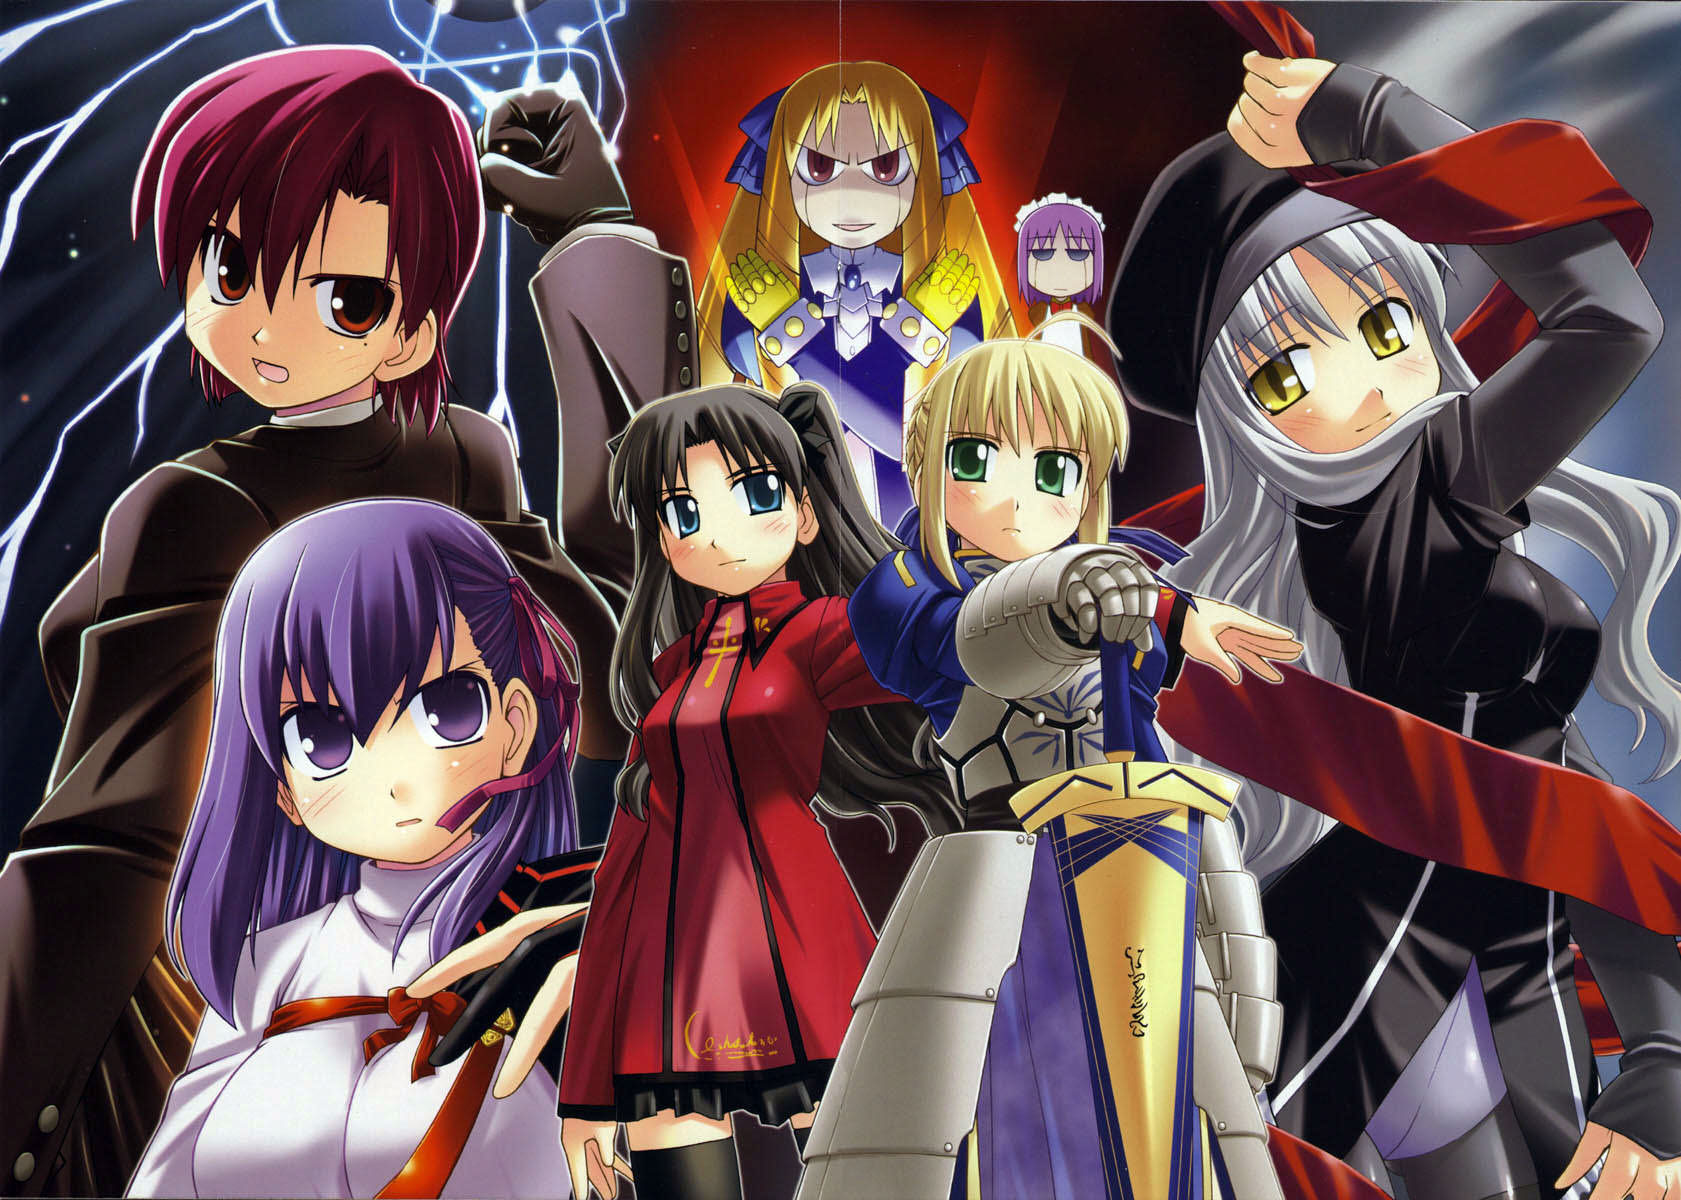 Fate/hollow ataraxia image - Anime Fans of modDB - Indie DB